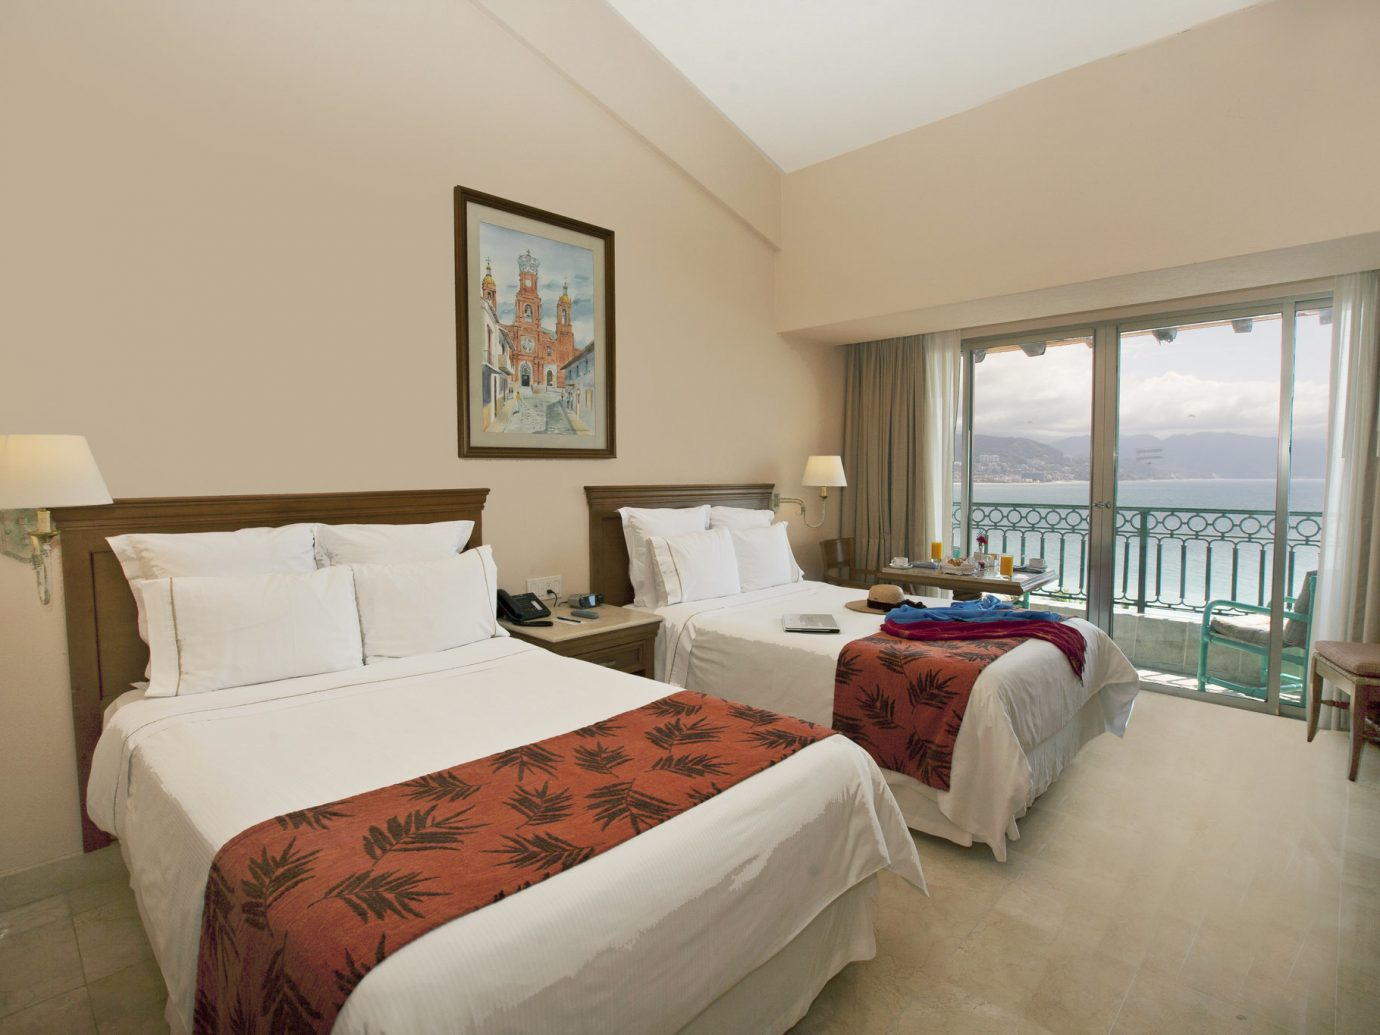 All-Inclusive Resorts Hotels bed indoor wall floor room sofa Bedroom window hotel ceiling Suite real estate interior design bed frame estate pillow decorated furniture